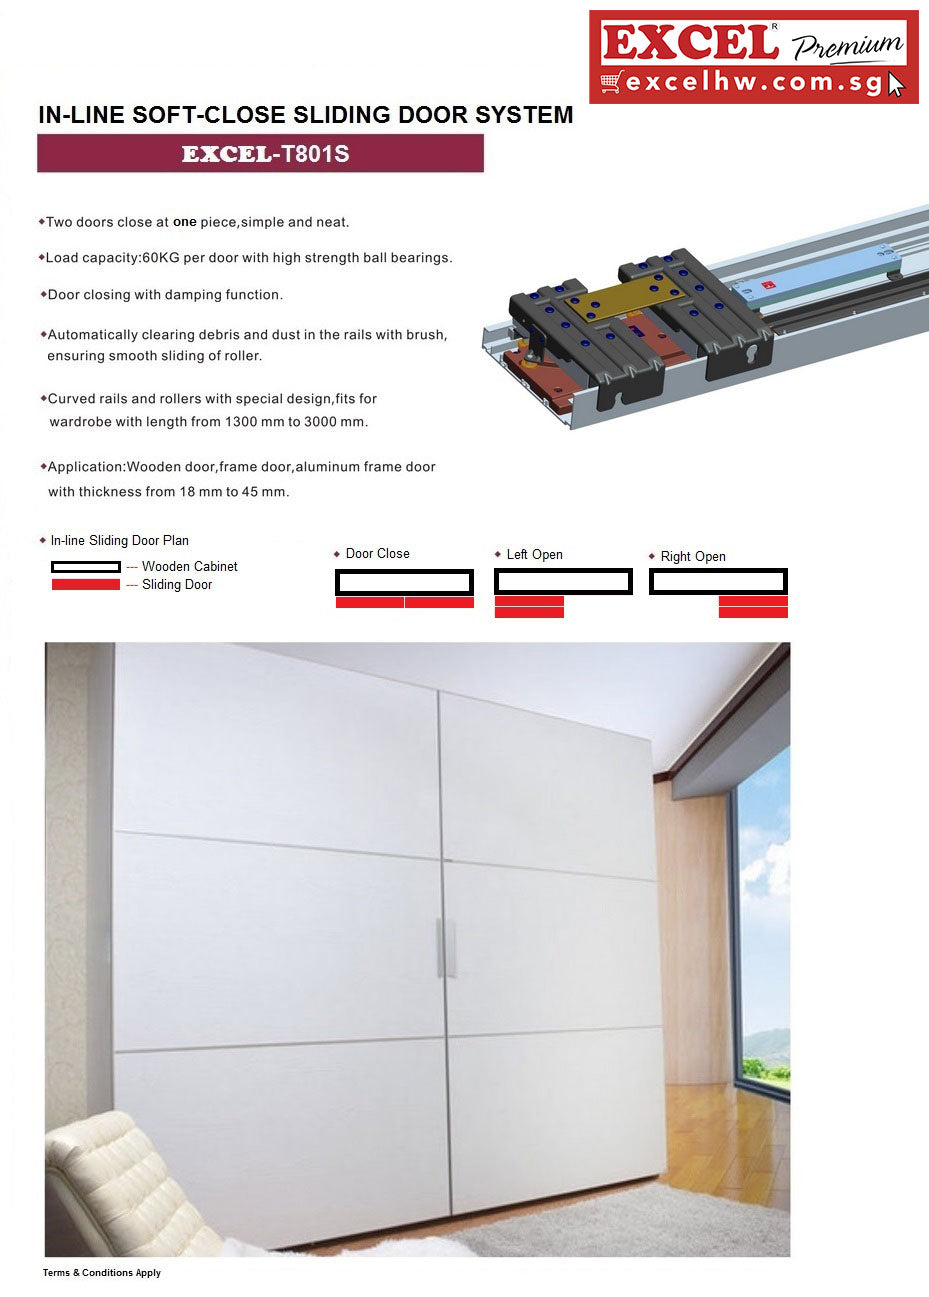 EXCEL-AMANZIO-IN-LINE SLIDING DOOR SYSTEM